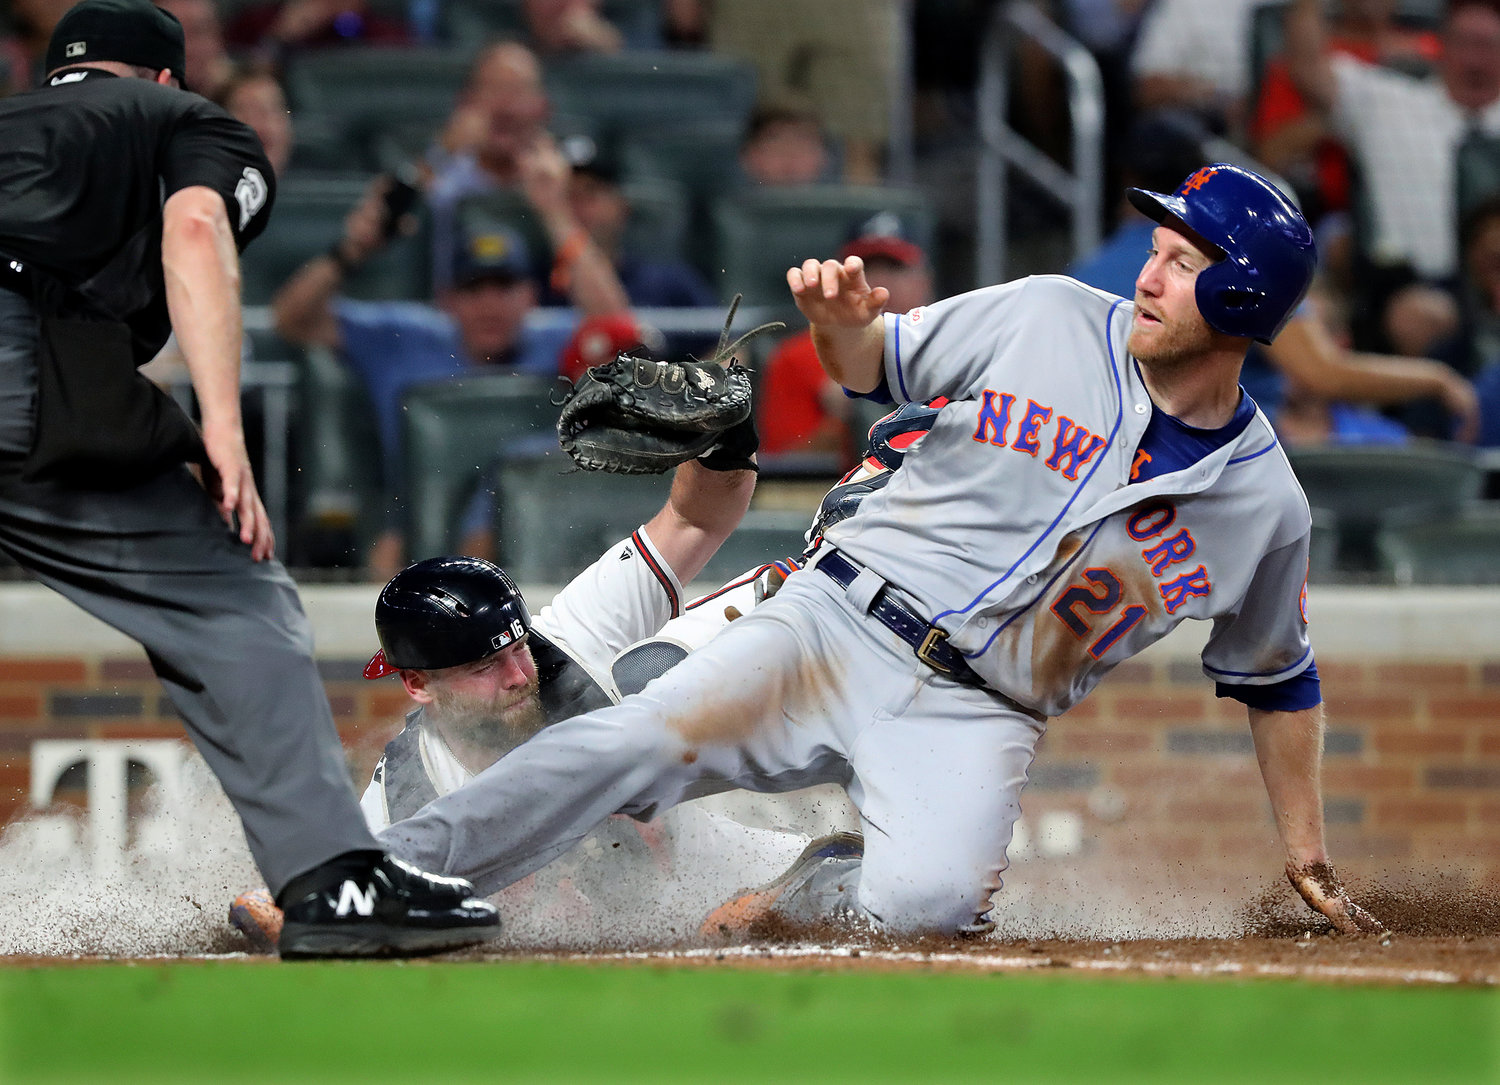 OUT AT THE PLATE — Braves catcher Brian McCann tags out the Mets' Todd Frazier at the plate on a throw from Ronald Acuna Jr. during the sixth inning of Tuesday's game in Atlanta.